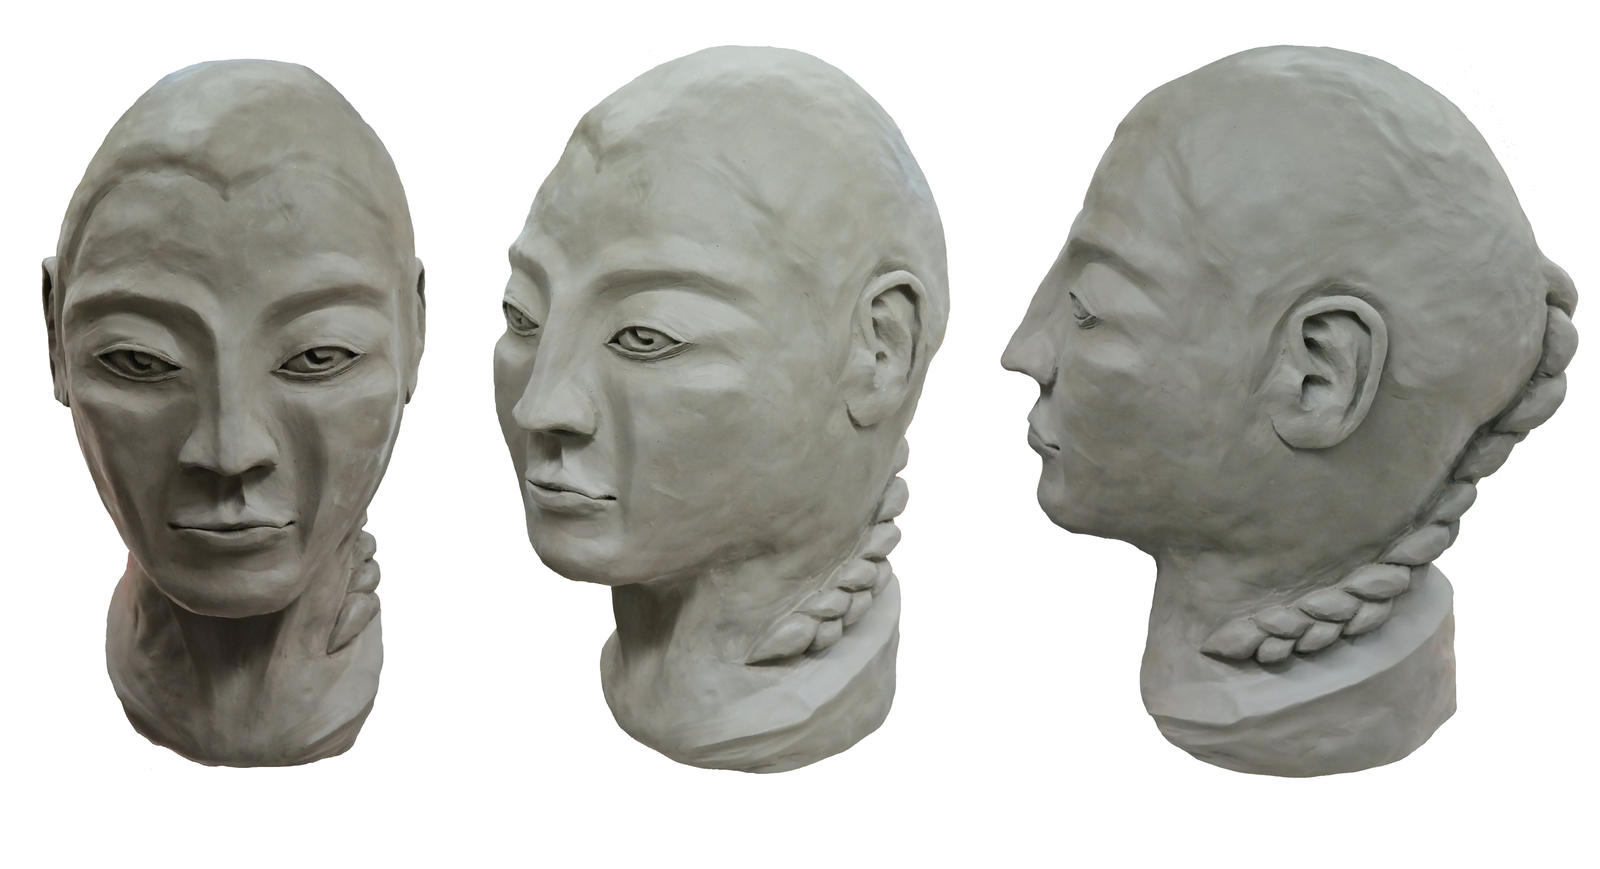 Female Bust Sculpture by scetxr-efx